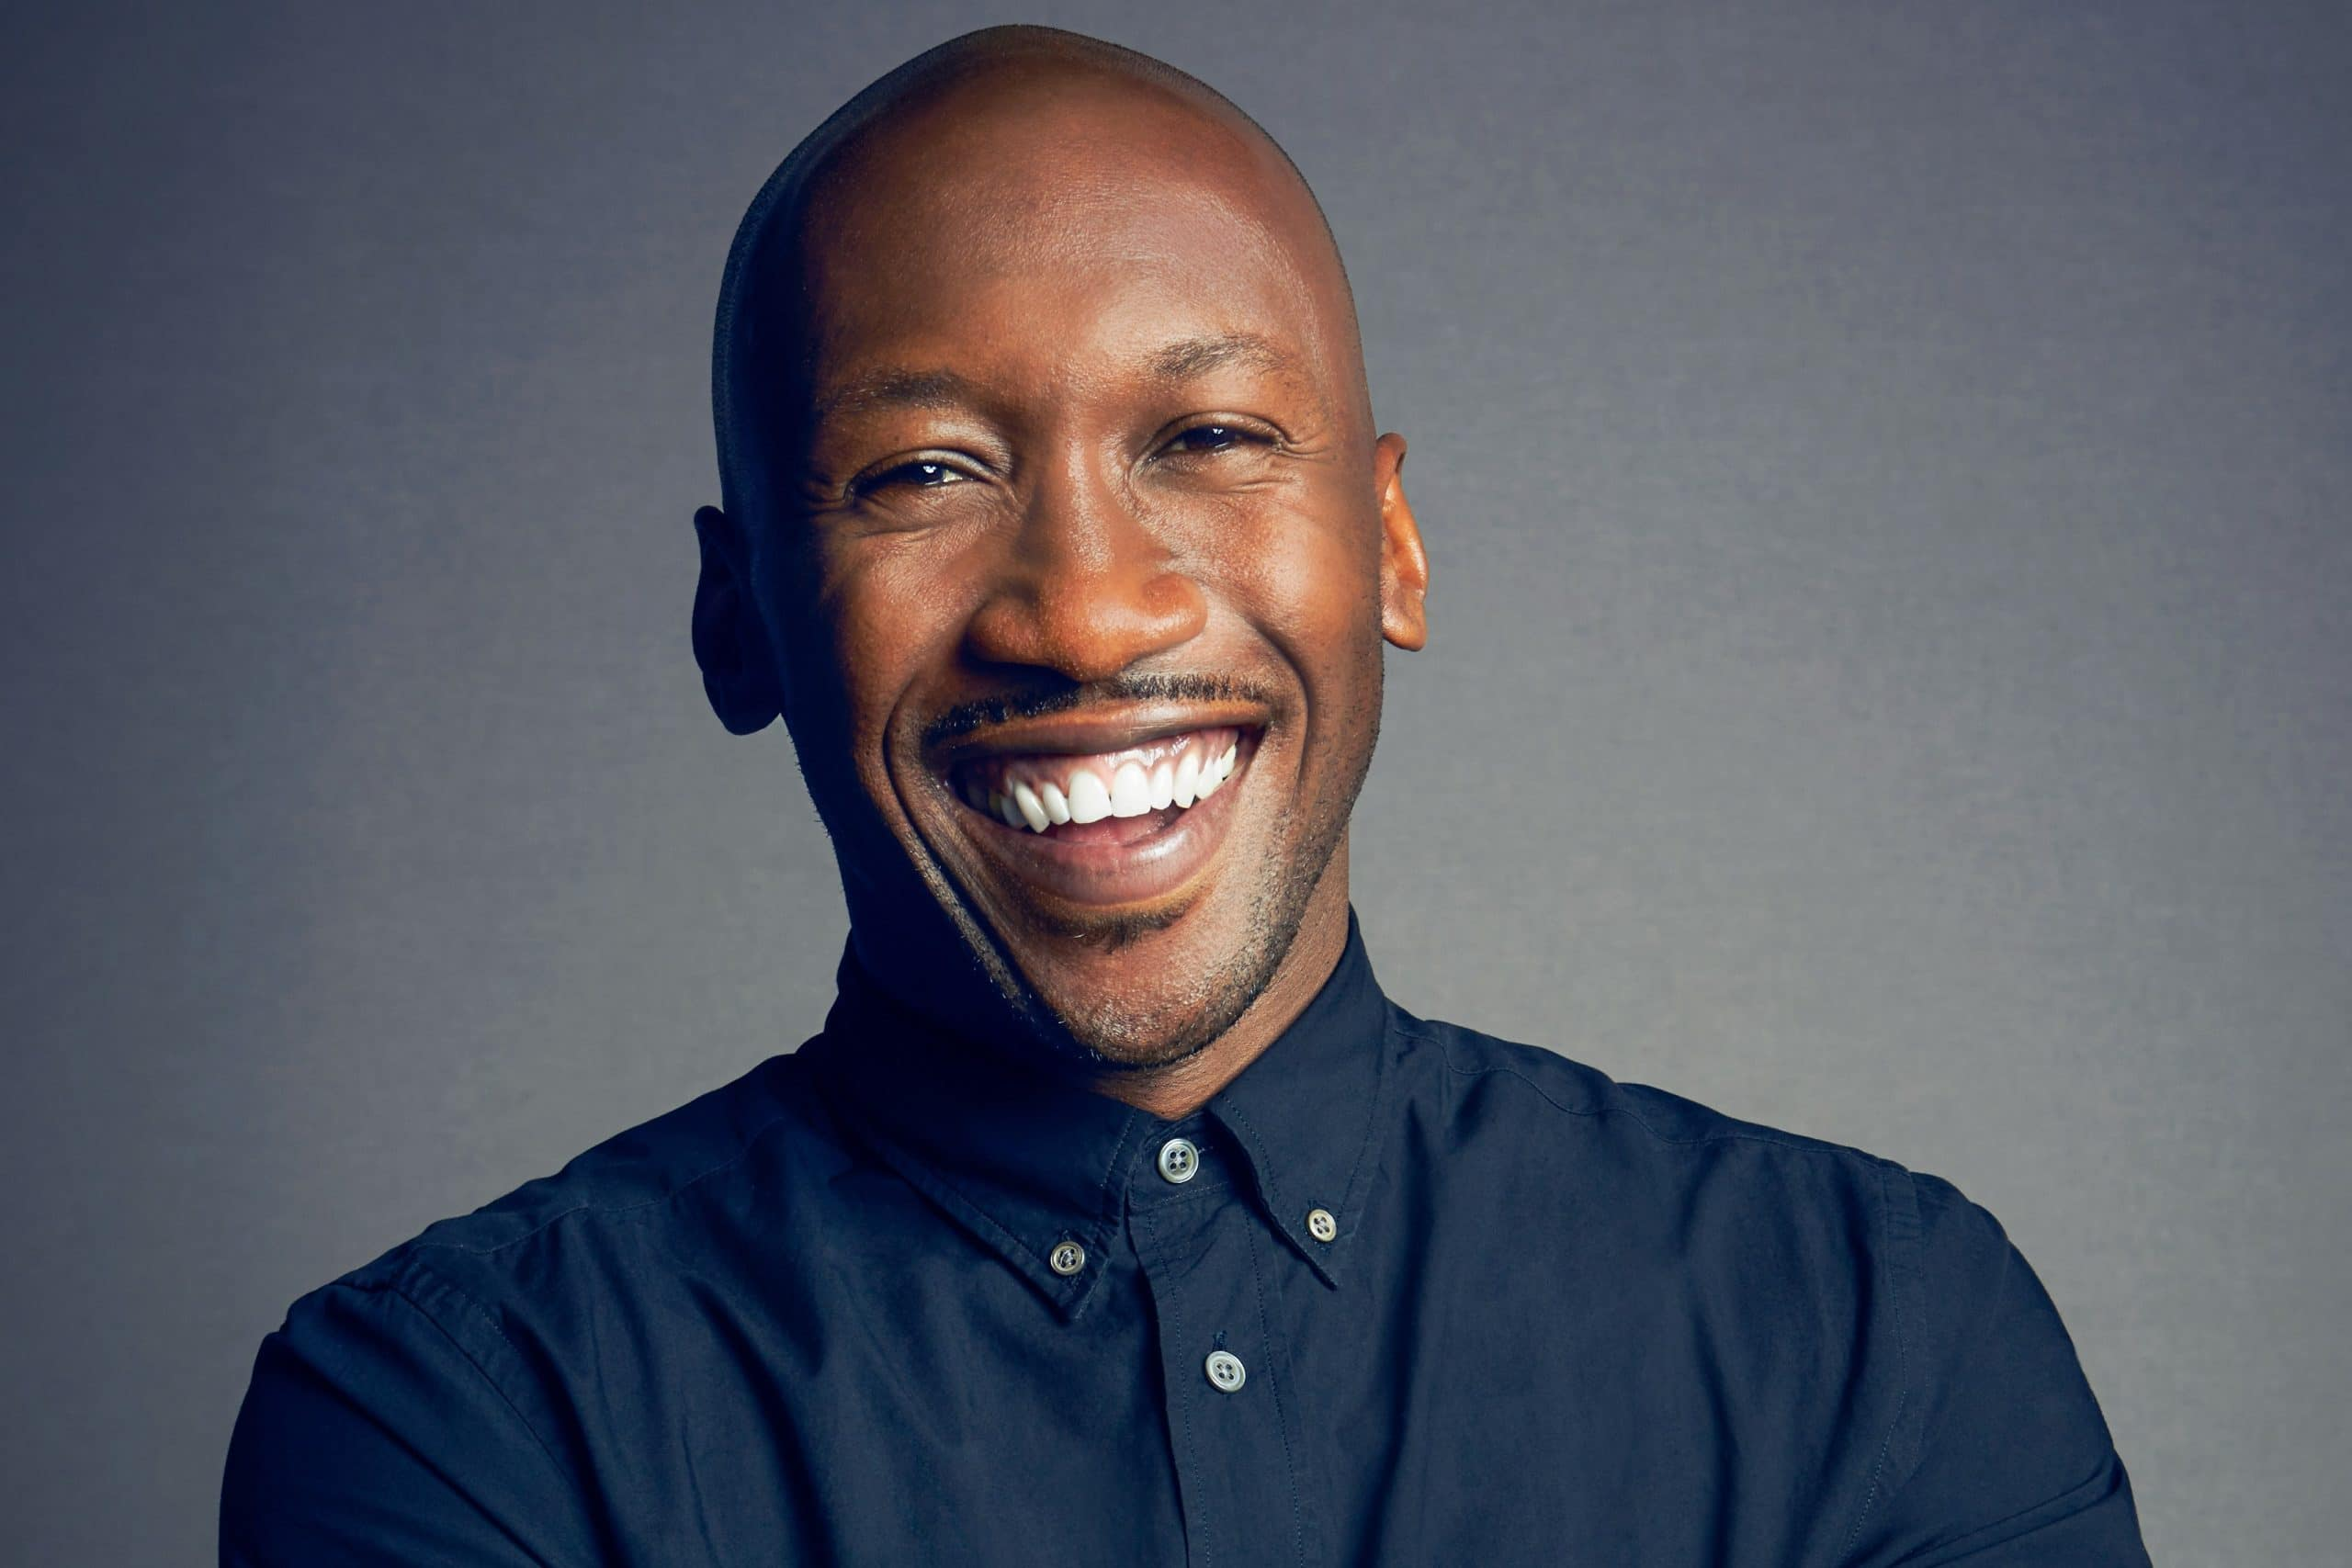 Mahershala Ali net worth